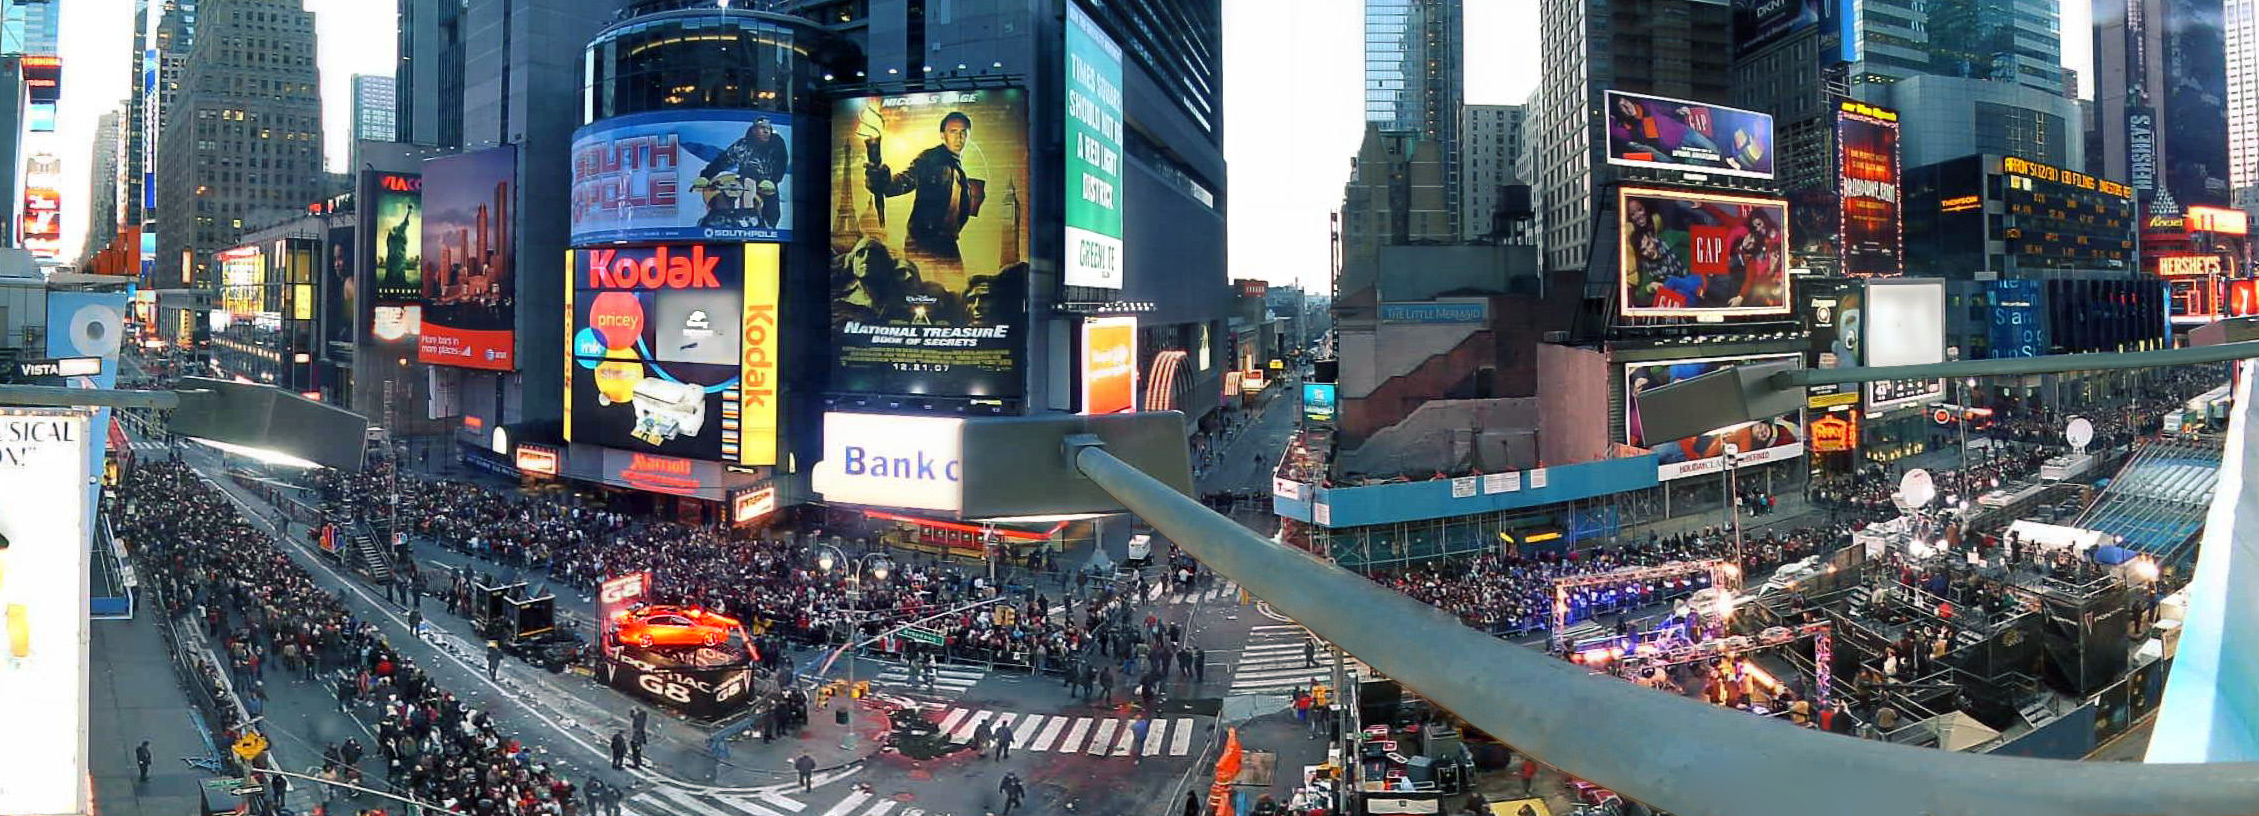 times square earthcam